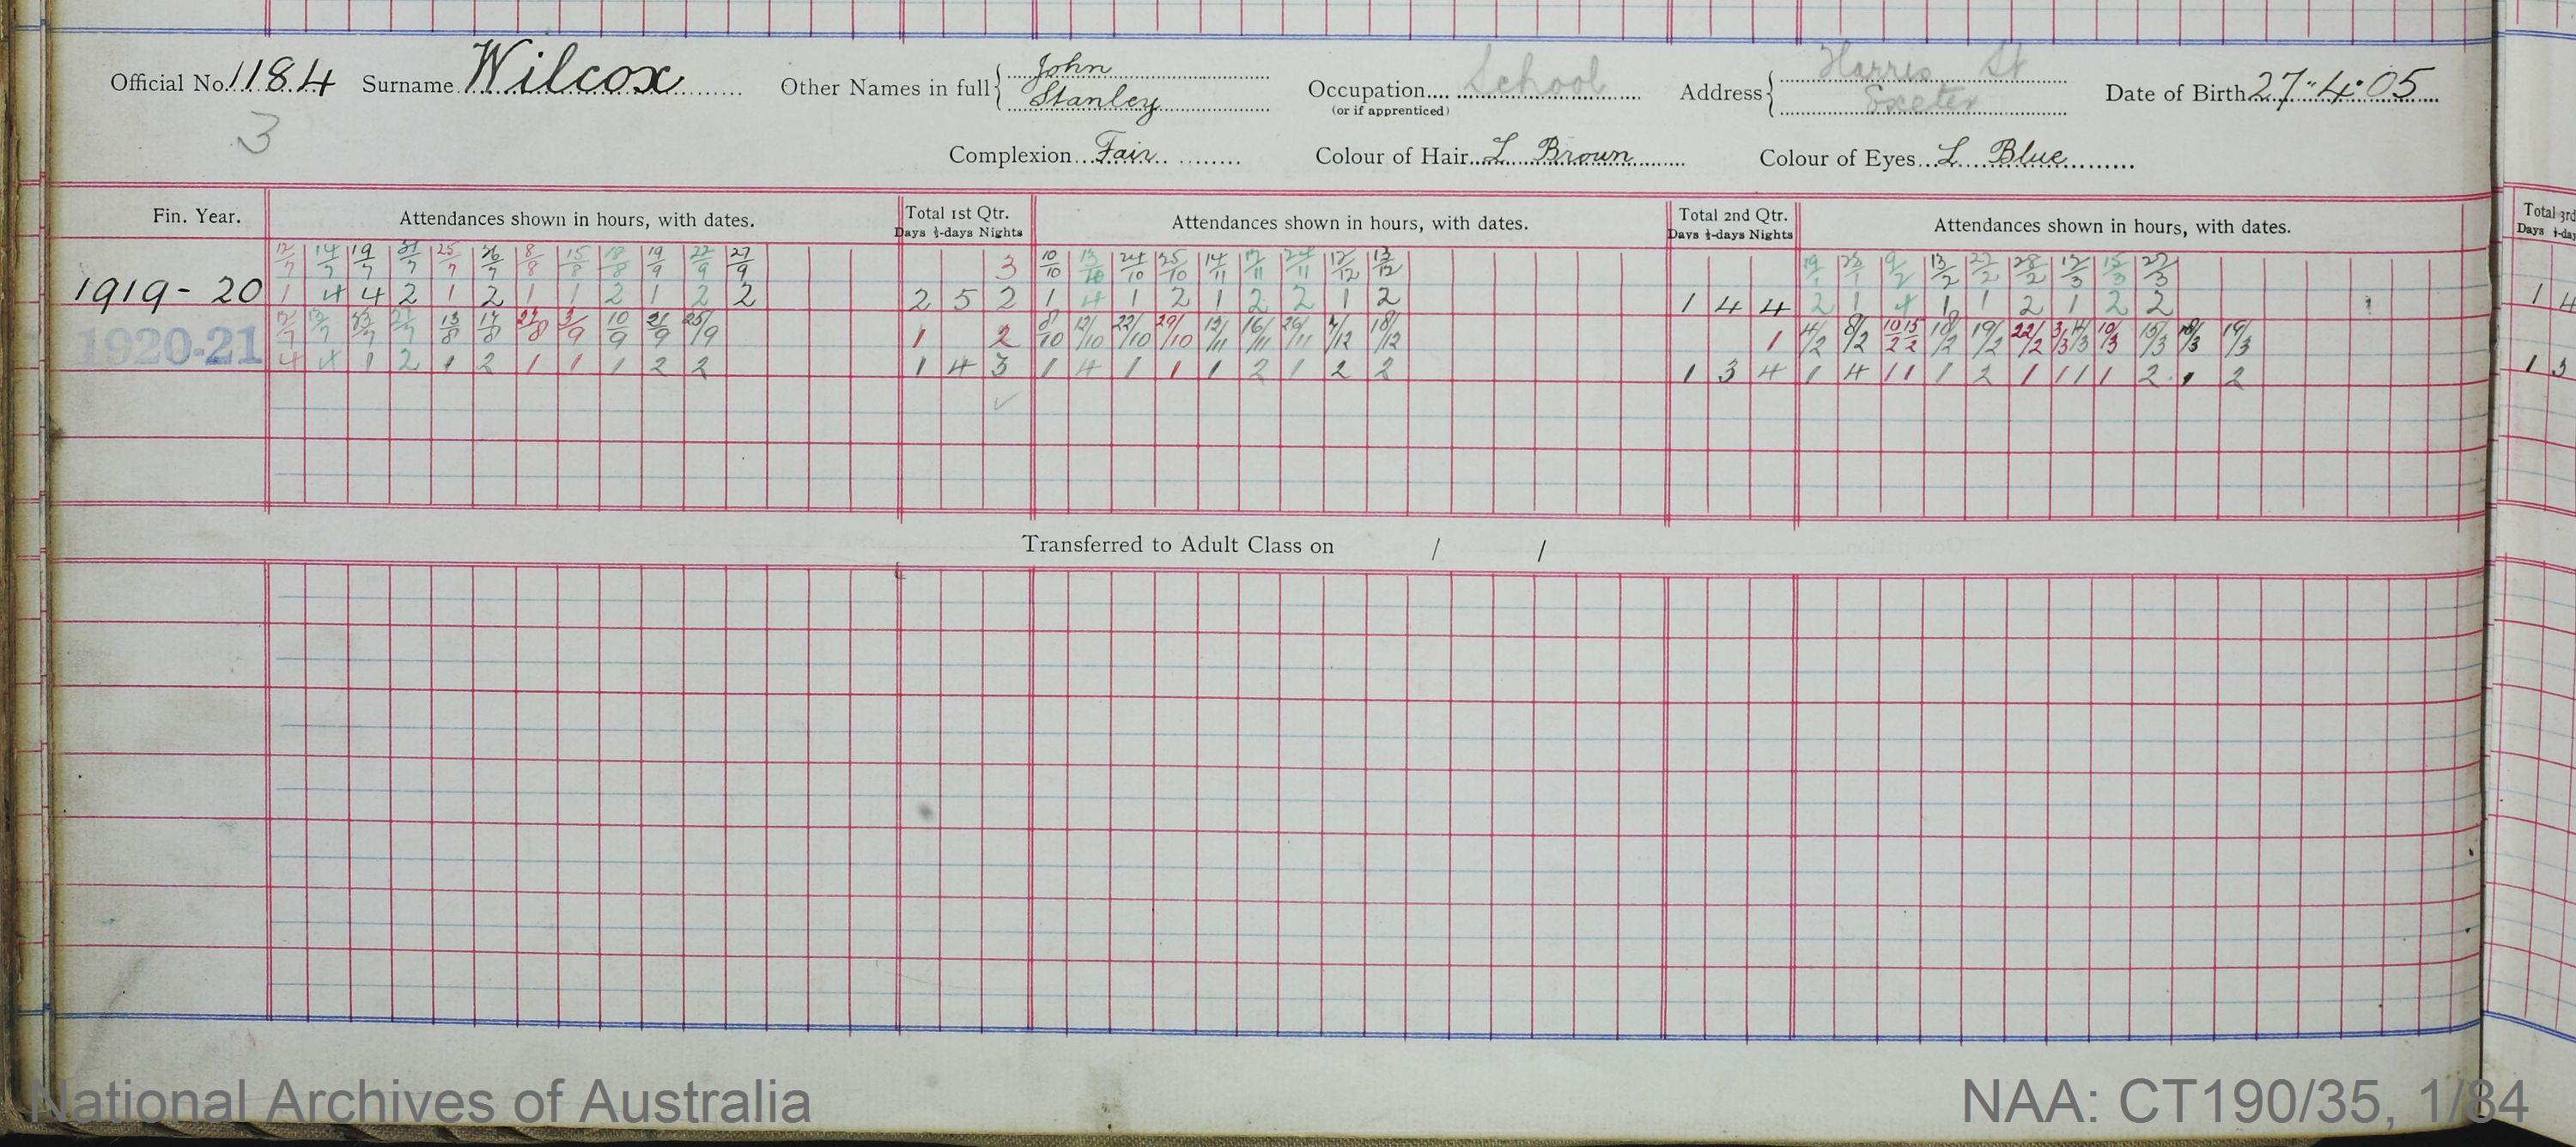 SURNAME - WILCOX;  GIVEN NAME(S) - John Stanley;  OFFICIAL NUMBER - 1184;  DATE OF BIRTH - 27 April 1905;  PLACE OF BIRTH - [Unknown];  NEXT OF KIN - [Unknown];  SERVICE/STATION - Semaphore, South Australia;  REGISTRATION DATE - January 1919